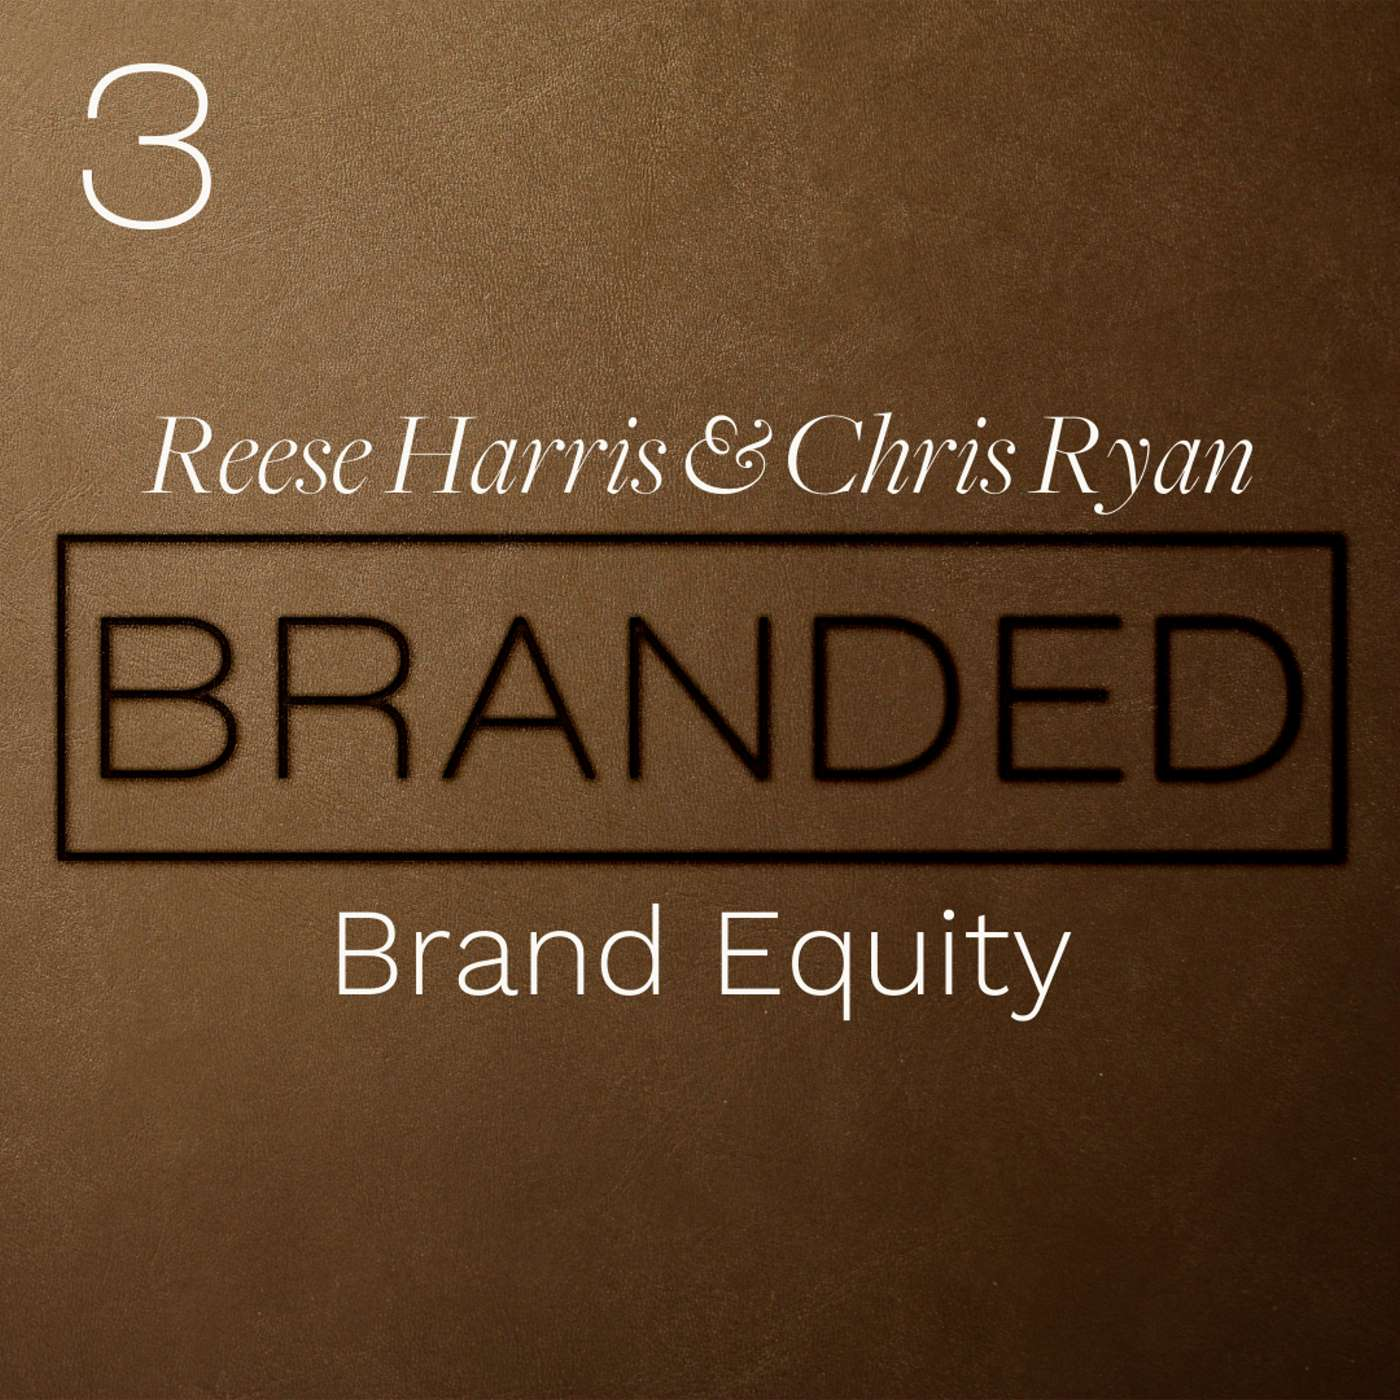 003 Reese Harris And Chris Ryan on Brand Equity